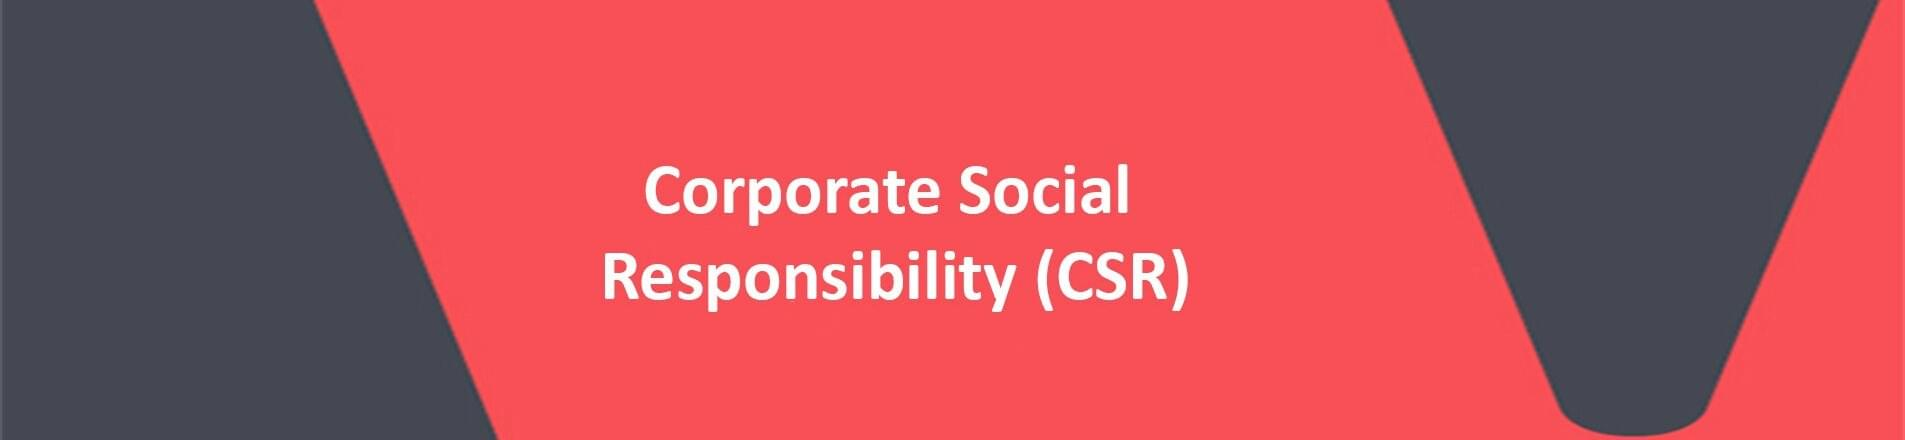 Red background with white text overlaid, spelling Corporate Social Responsibility.